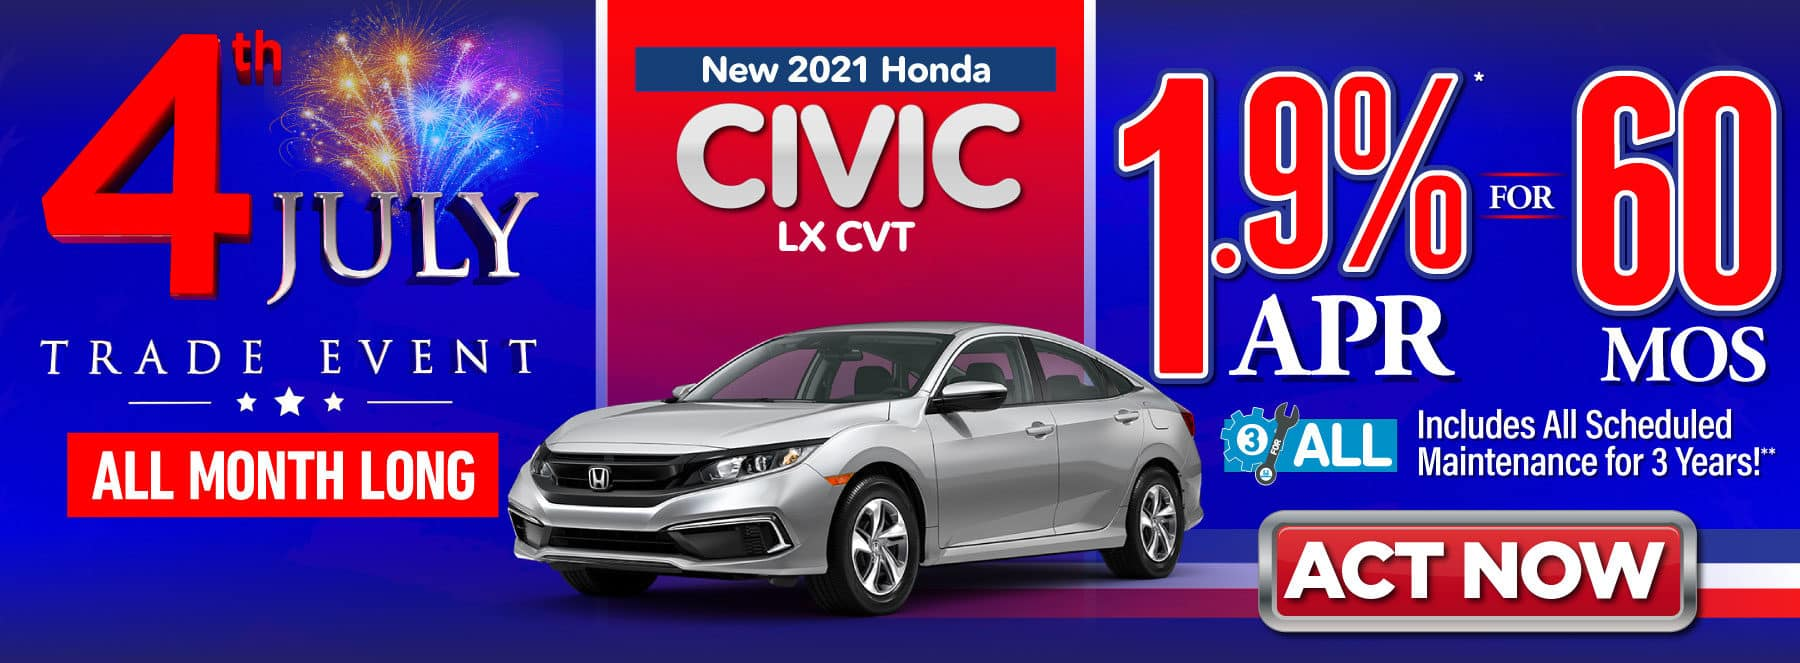 New 2021 Honda Civic LX CVT - 1.9% APR for 60 Months - ACT NOW